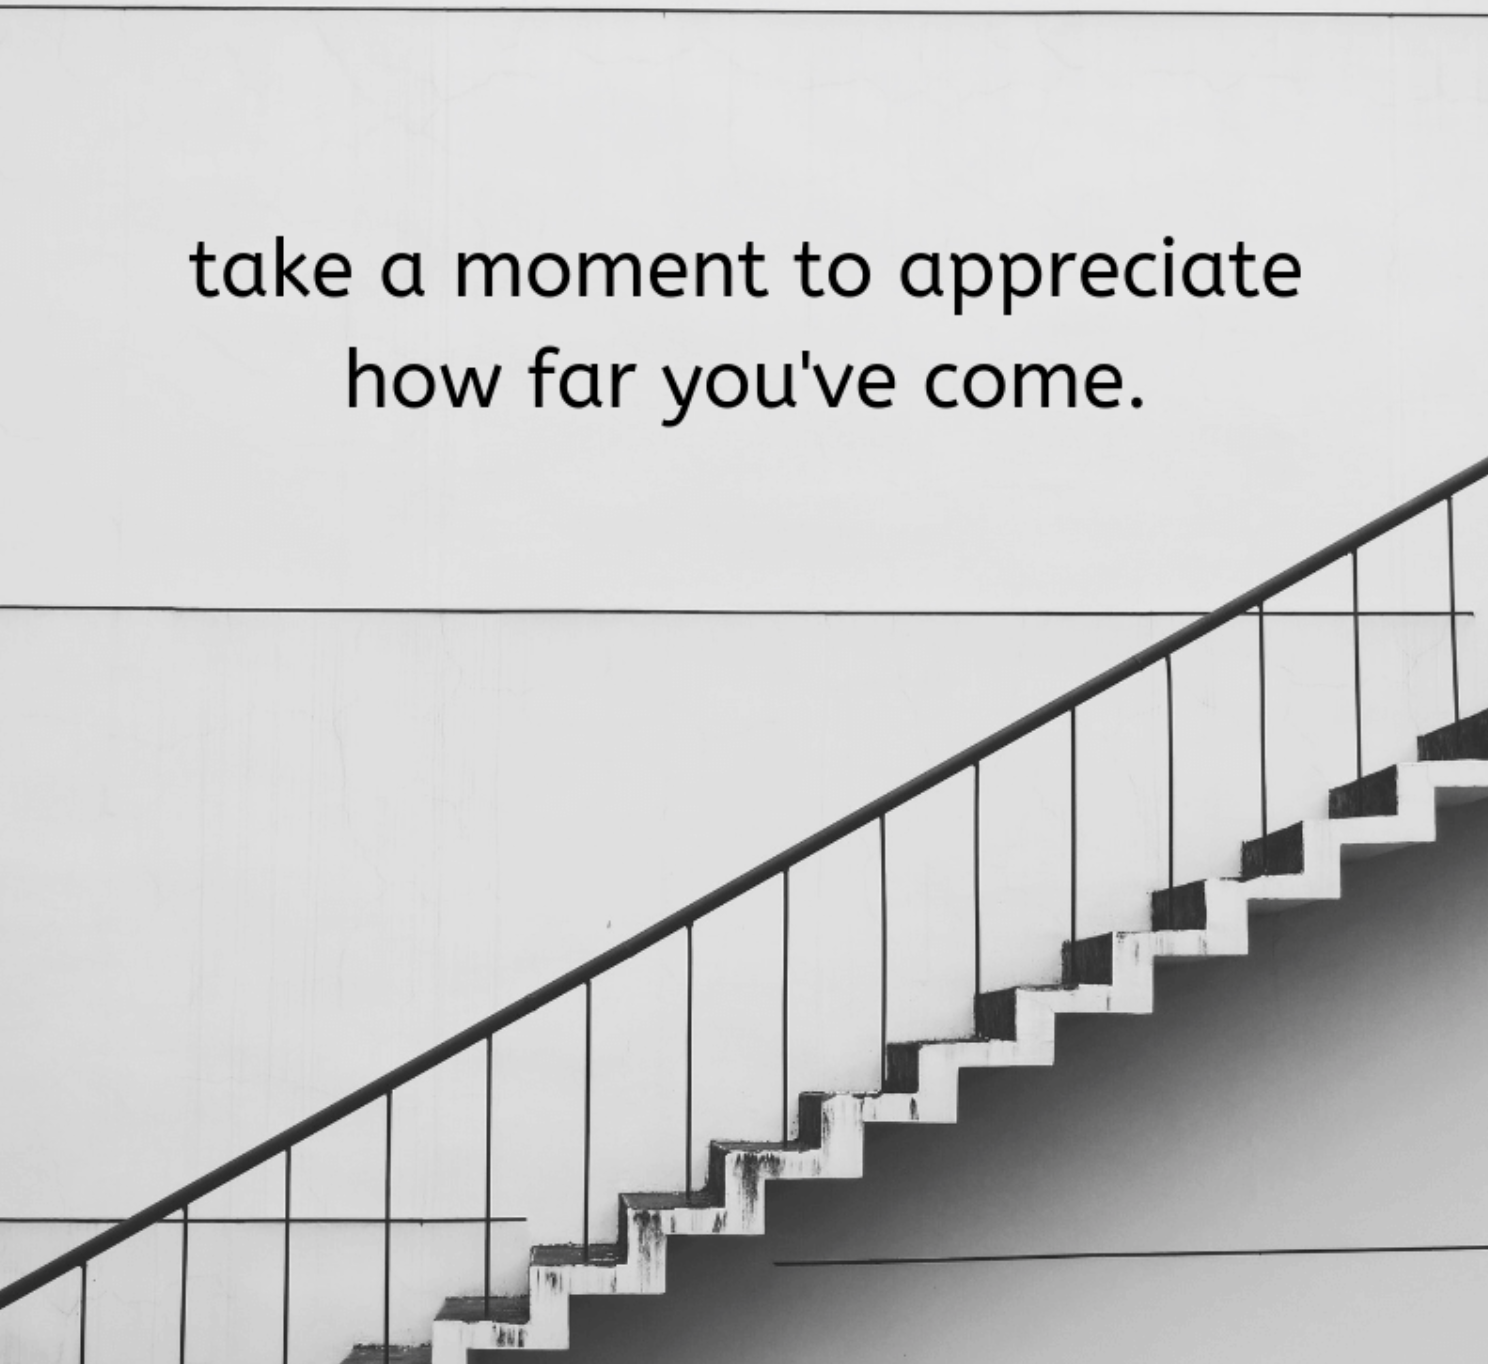 [Image] Take a moment to appreciate how far you've come.